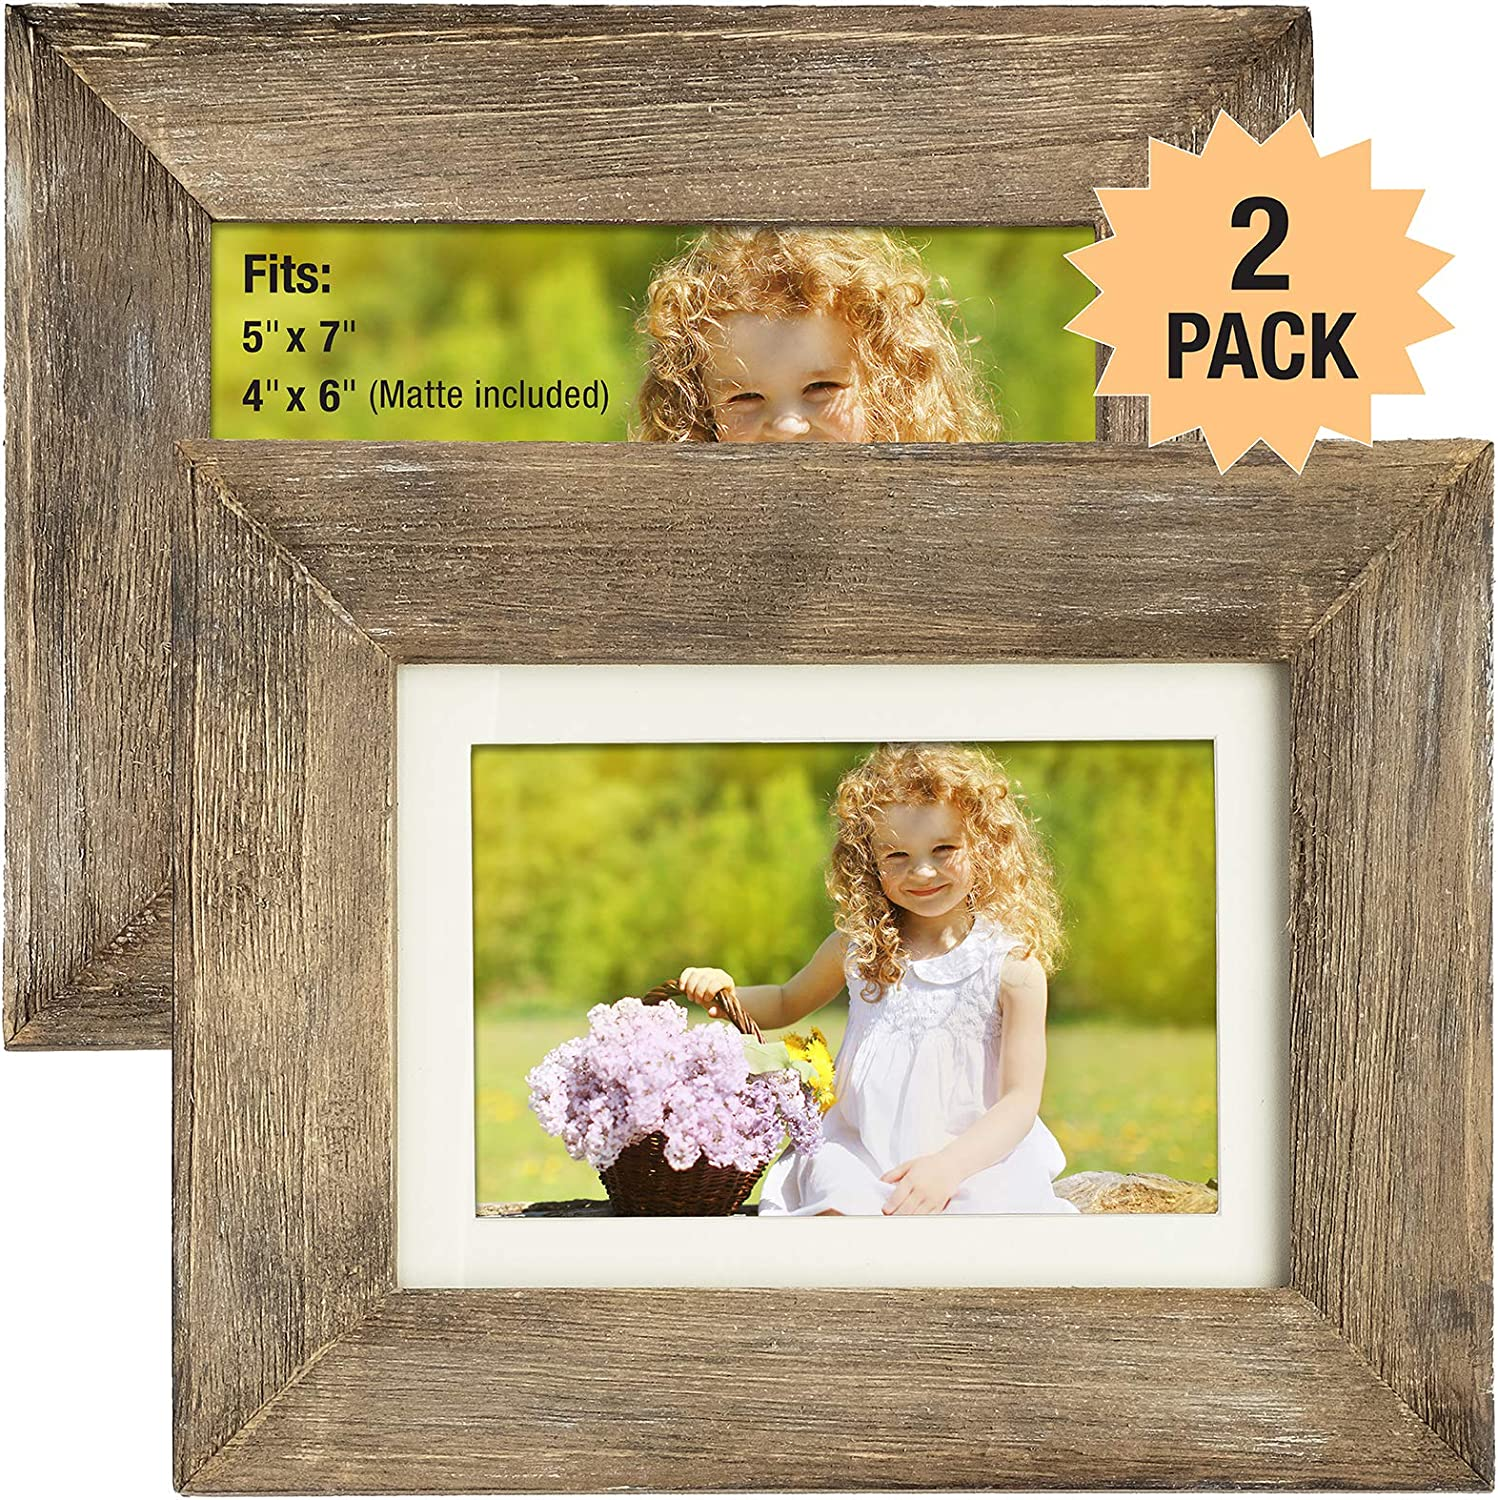 Rustic Barnwood Picture Frame Set: Fits 5x7 or 4x6 Photos with Included Matte Photo Frames Holder for Wall Desktop or Tabletop Display. Thick Weathered Gray Wood Home Decor. (Pack of 2)